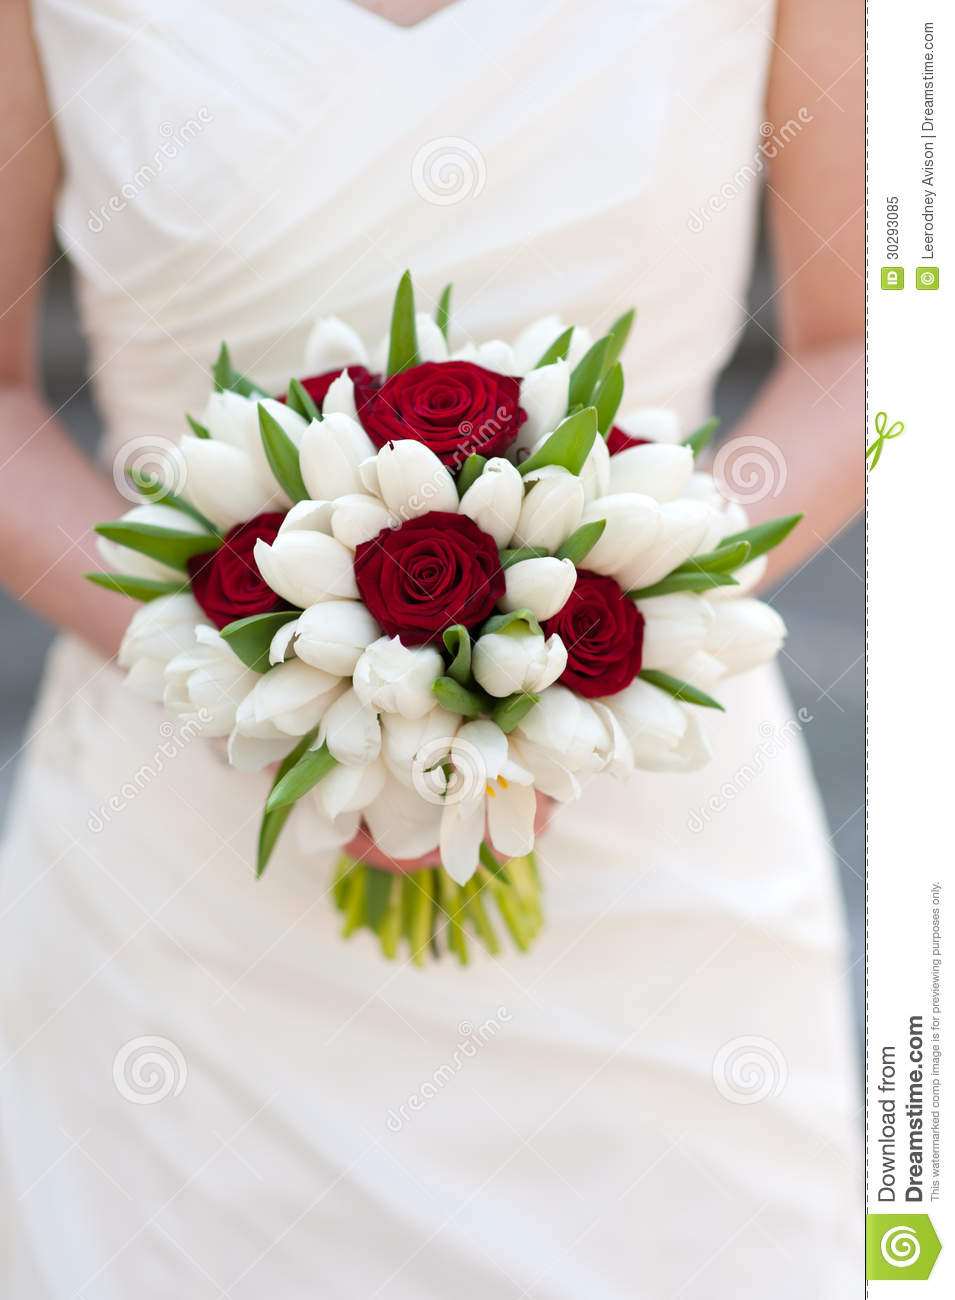 Red rose and white tulip wedding bouquet stock image for Bouquet de lys